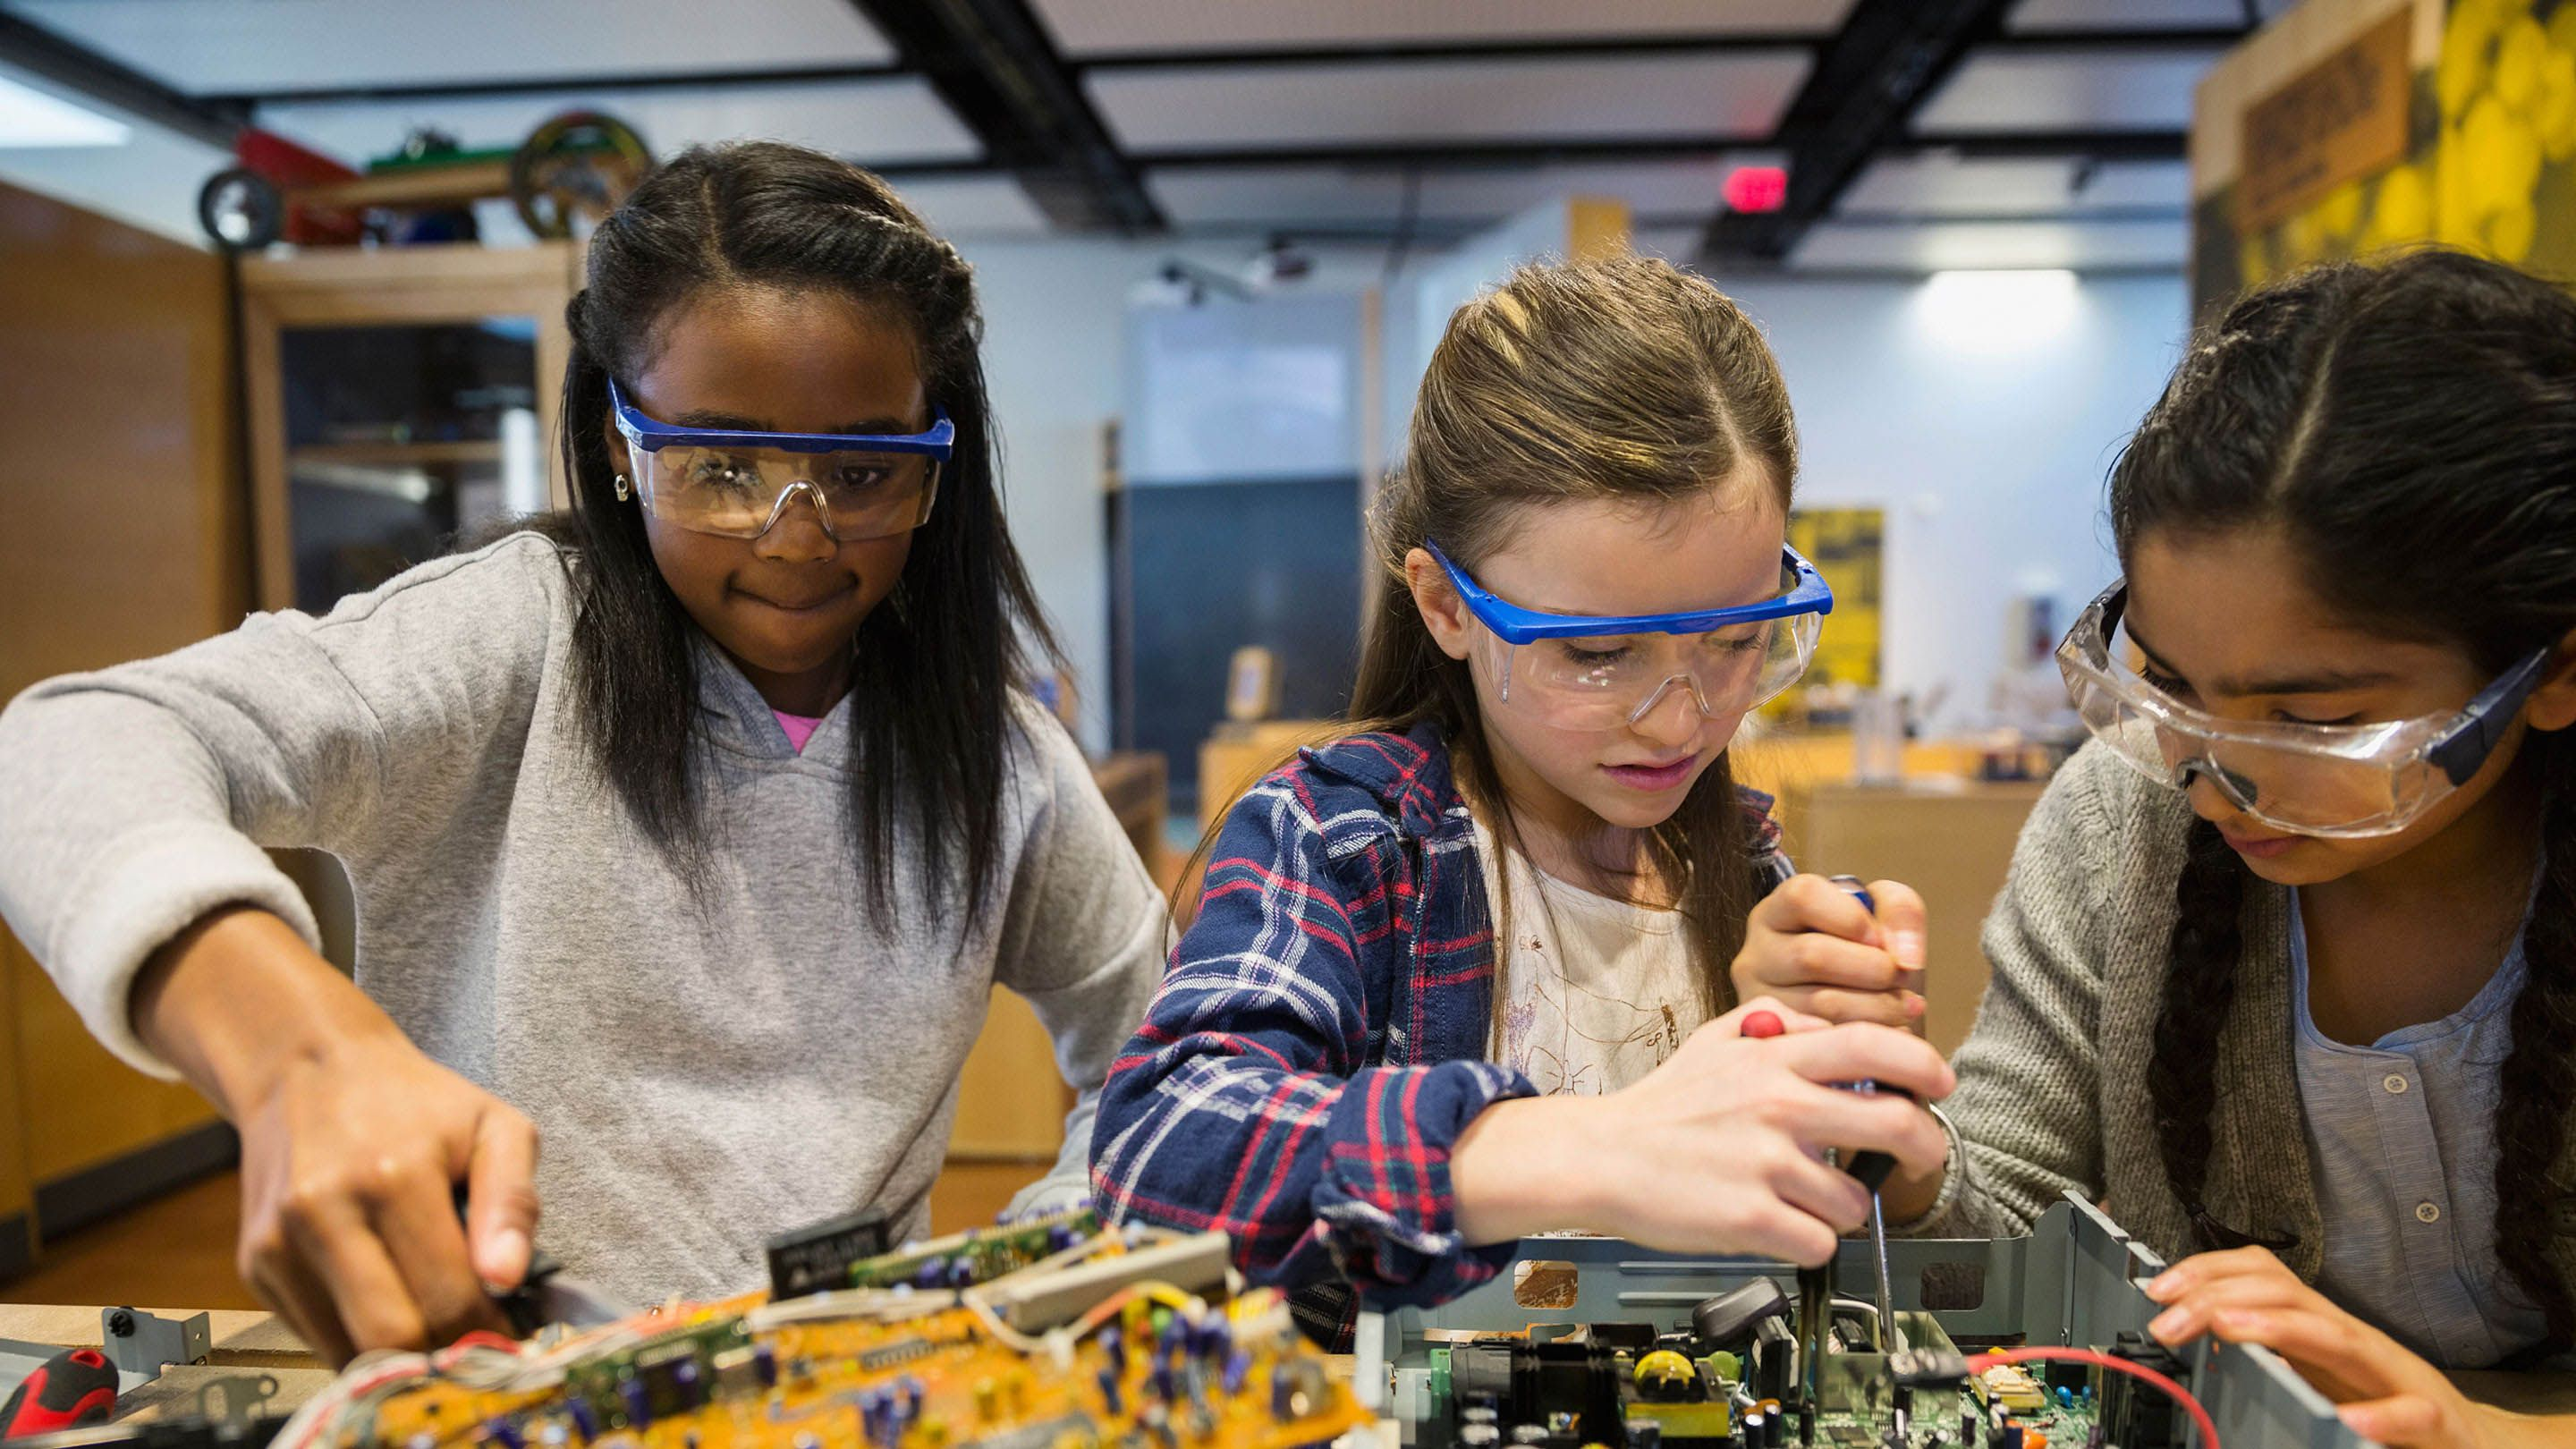 Three girls work on computer circuitry.